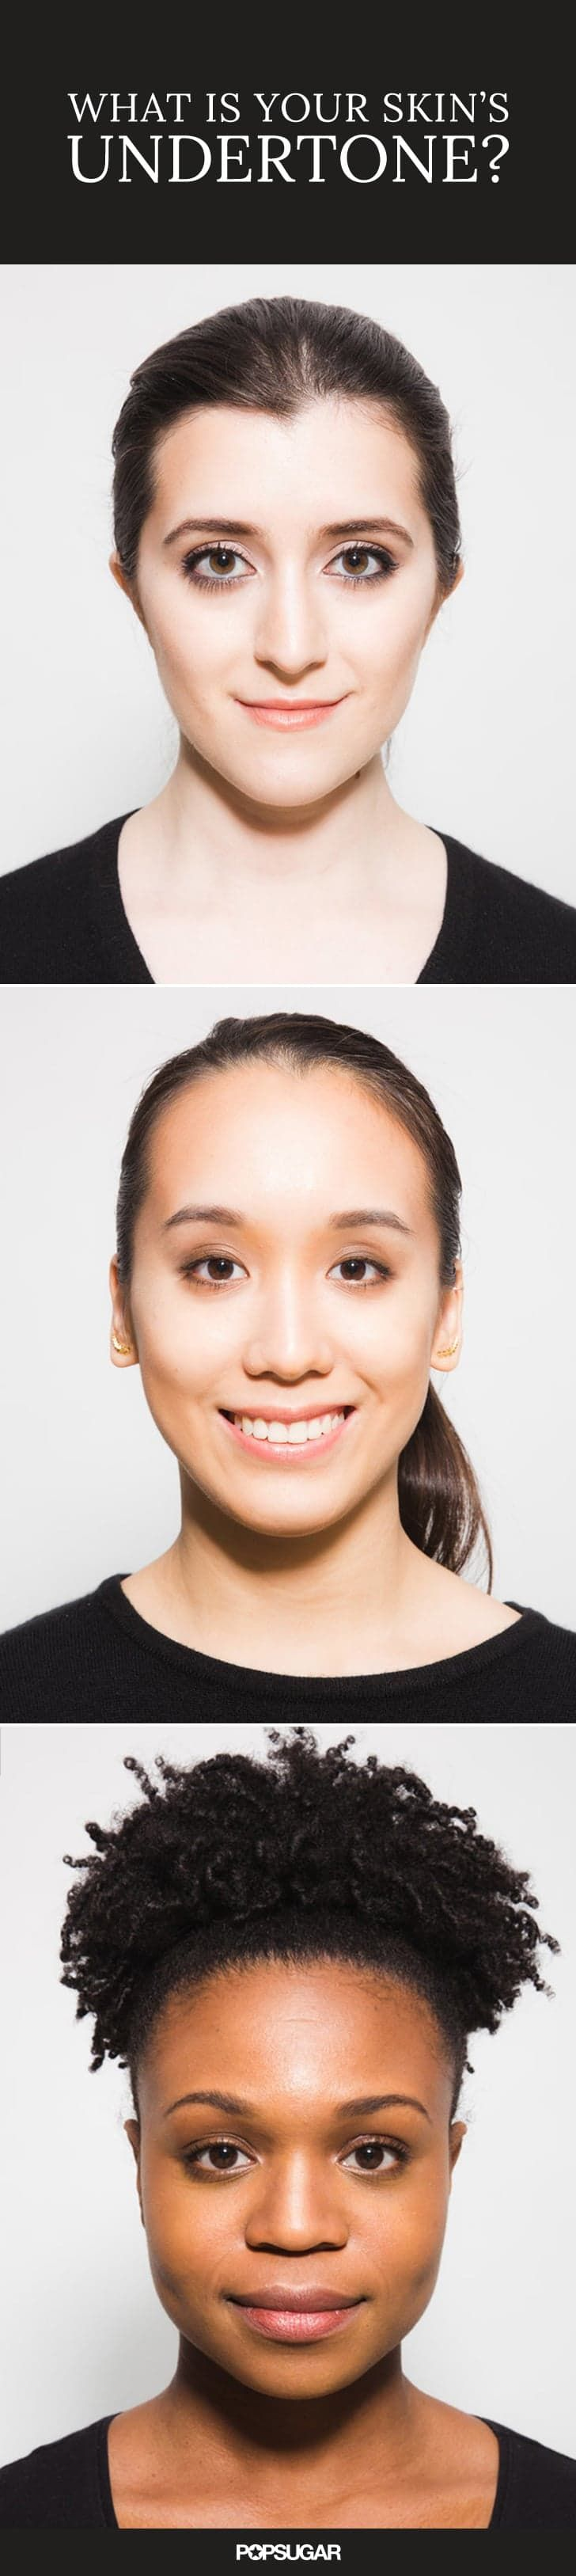 how to find your undertone for foundation